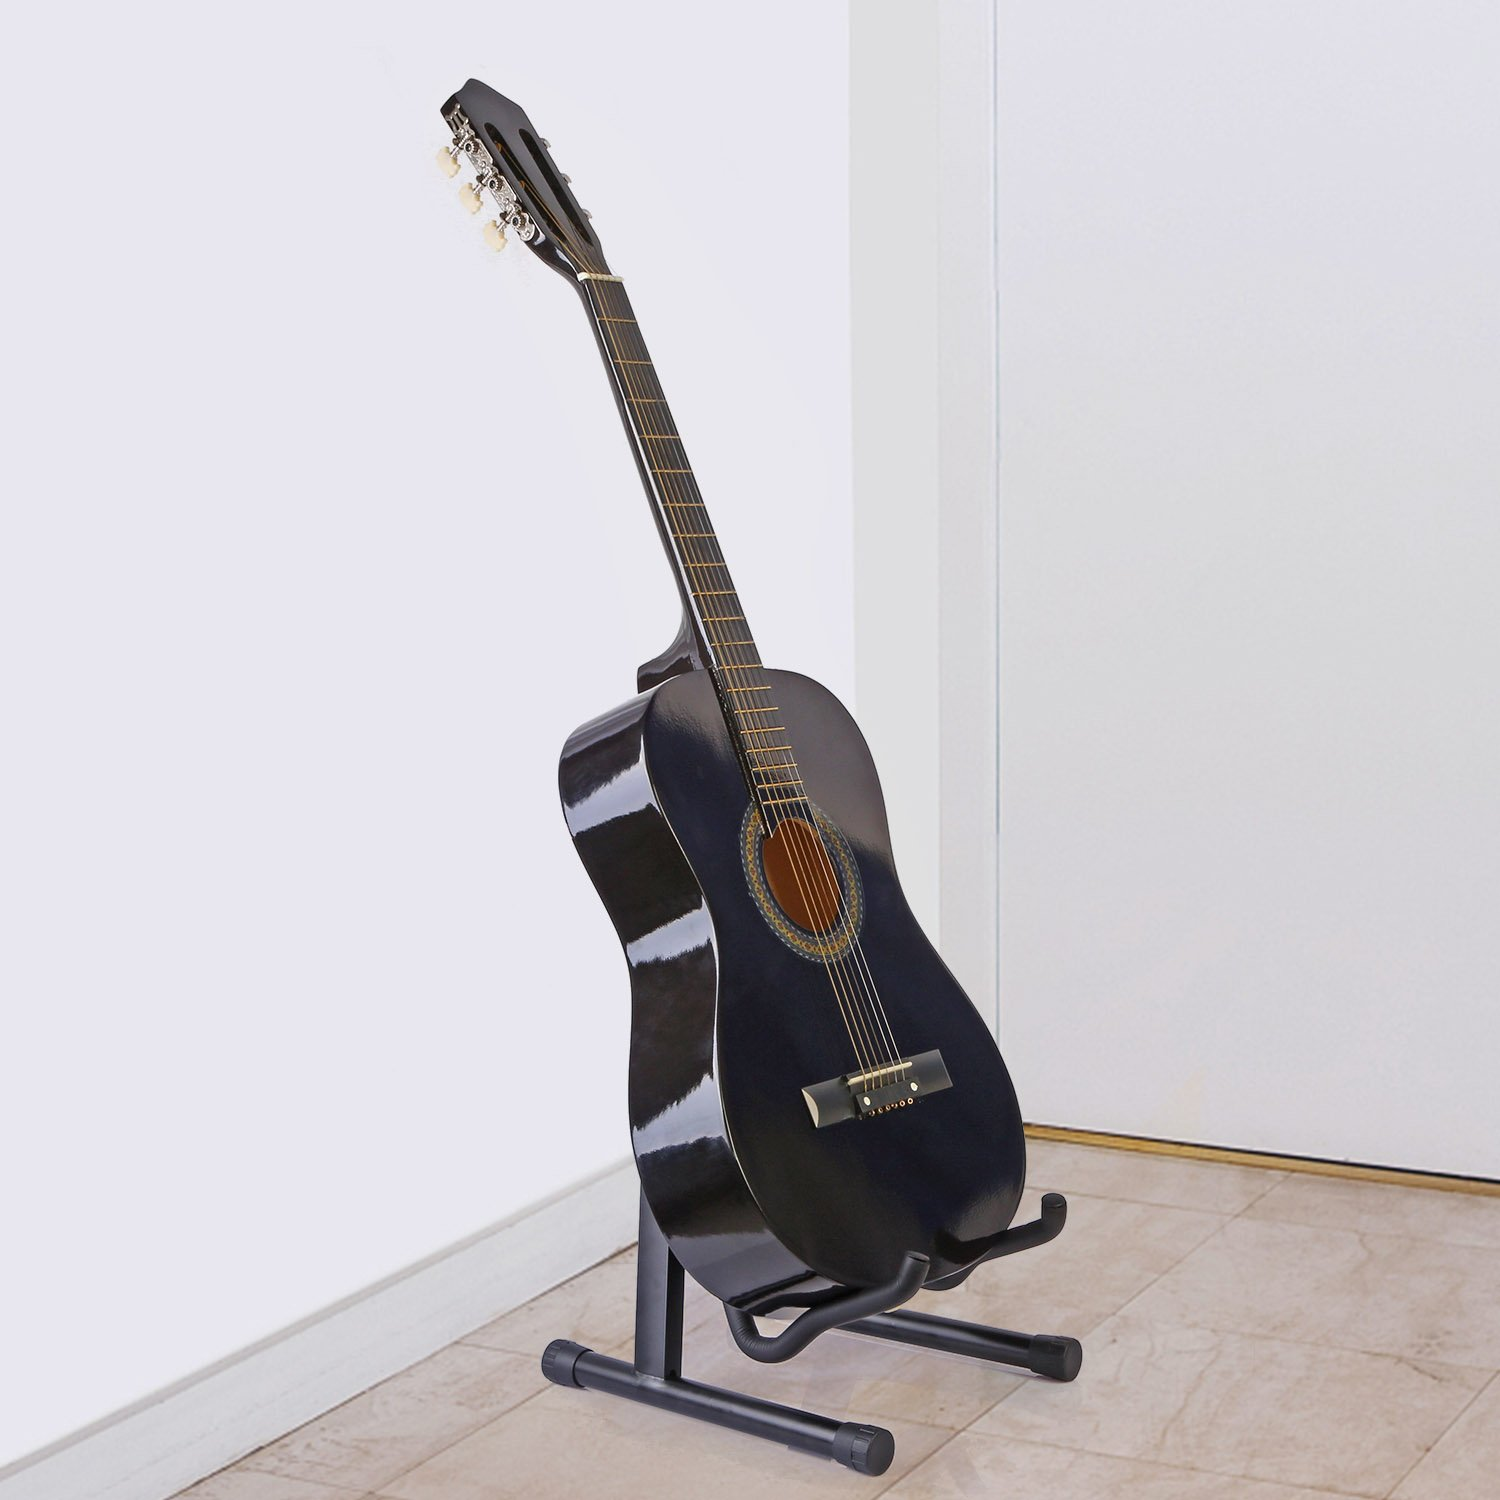 GPCT Universal Foldable Guitar Stand. Ready-To-Use Position, Adjustable Portable Light Weight Guitar Holder. For Electric Box/Classical/Folk/Flamenco/Hawaiian/Bass/Violin/Ukulele/Banjo/Mandolin